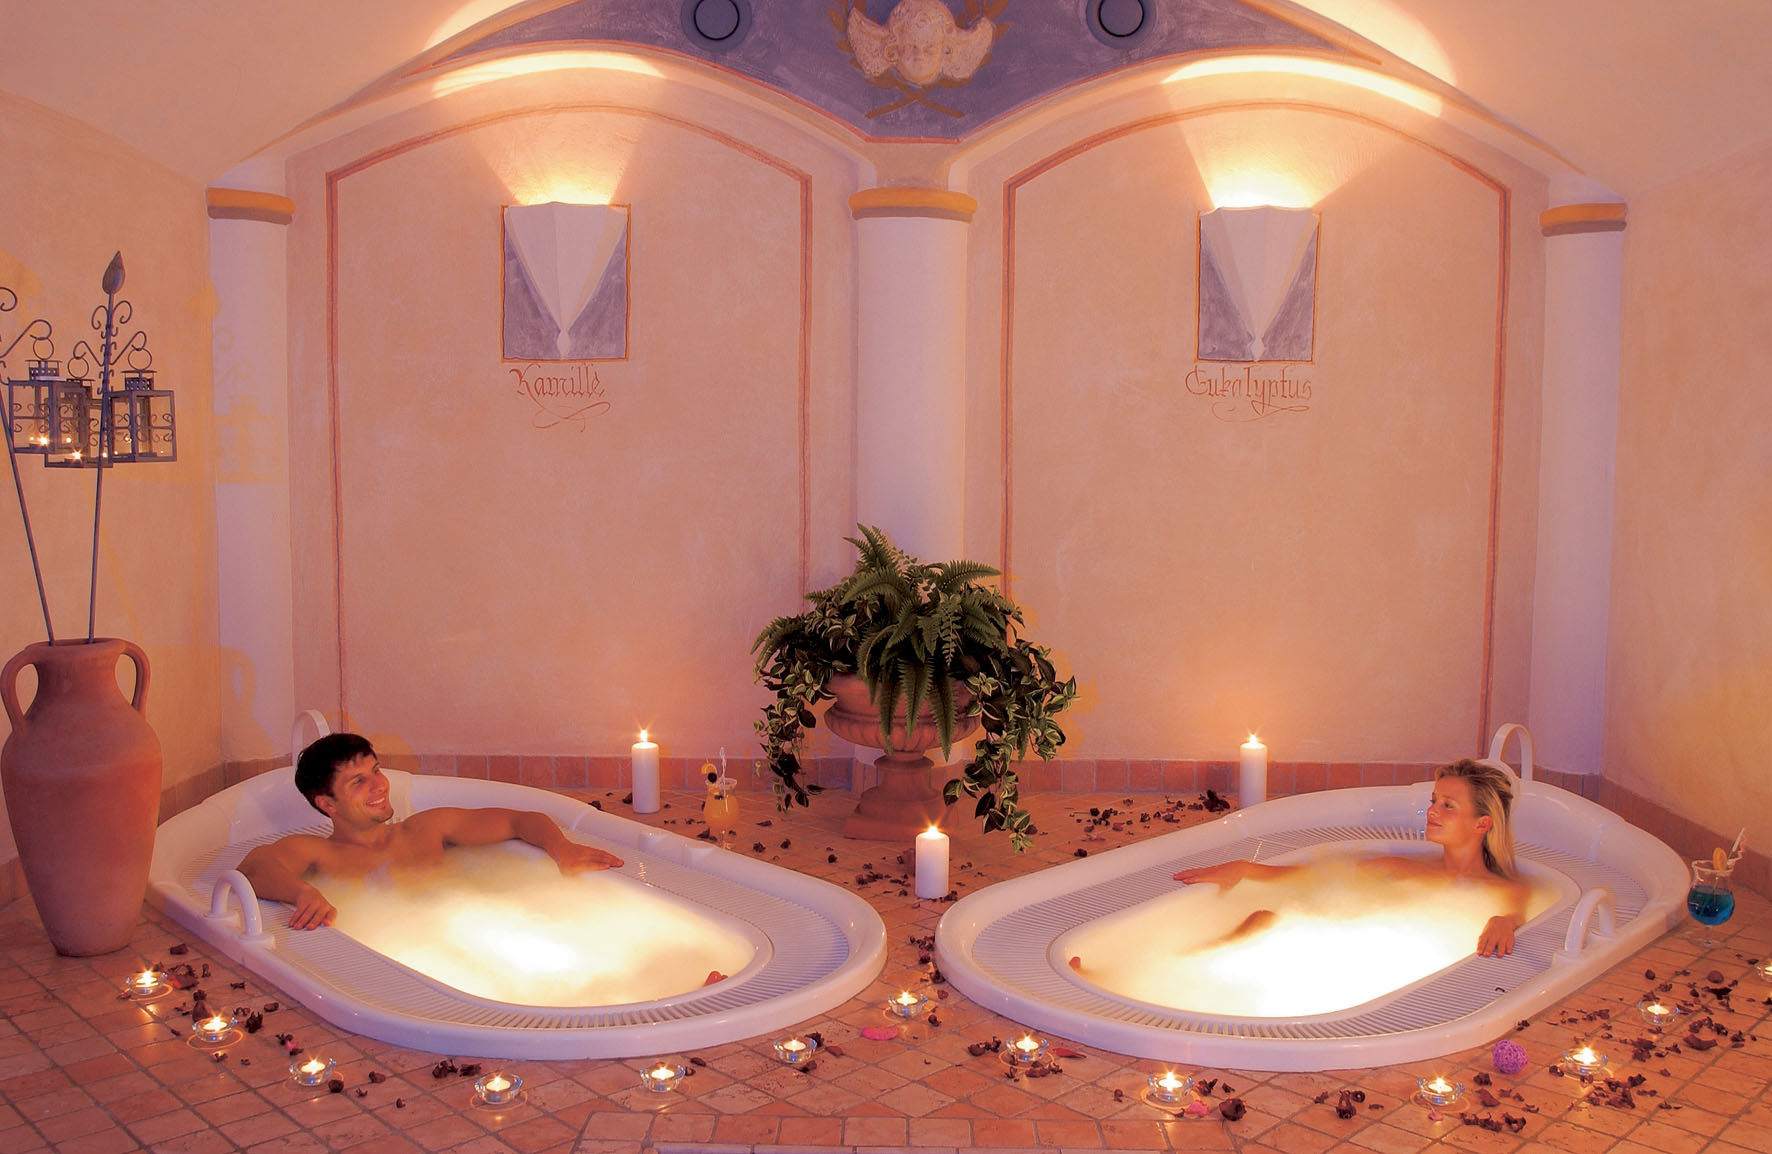 Weekend romantico due cuori e una SPA * FullTravel.it